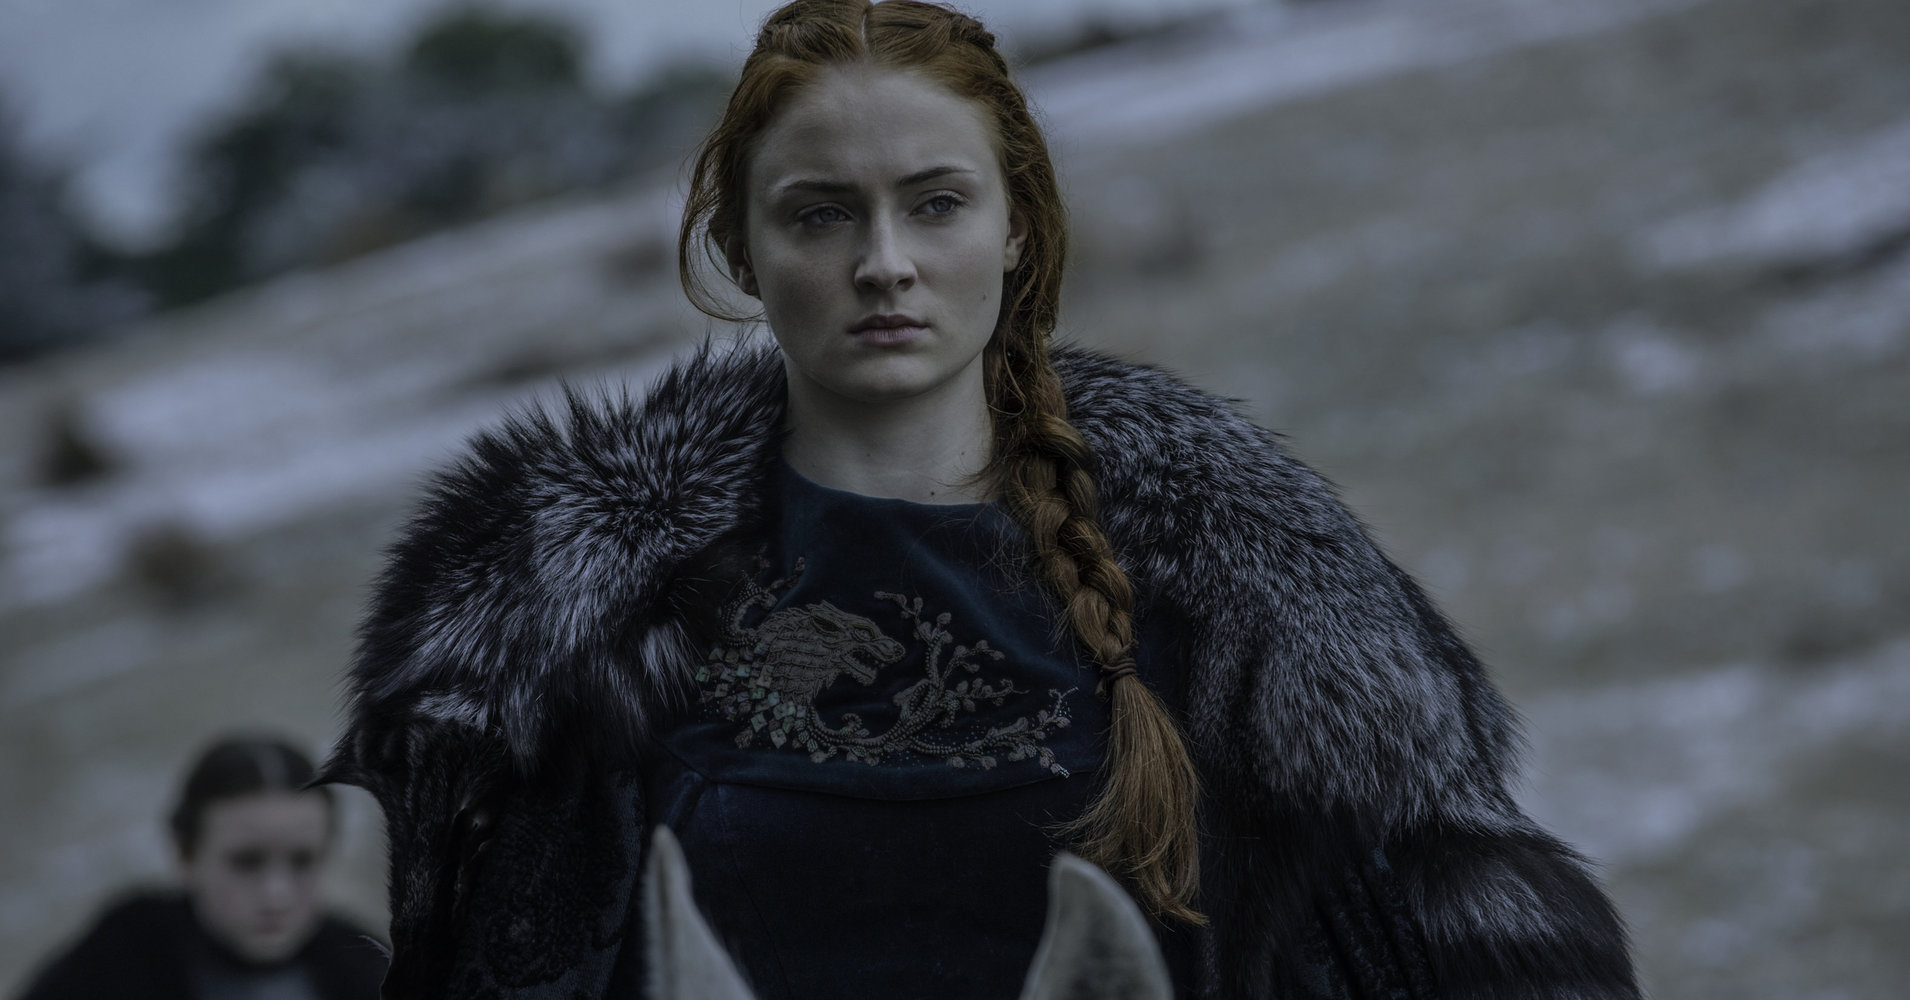 This Iconic 'Game Of Thrones' Moment May Have A Doggone Plot Hole